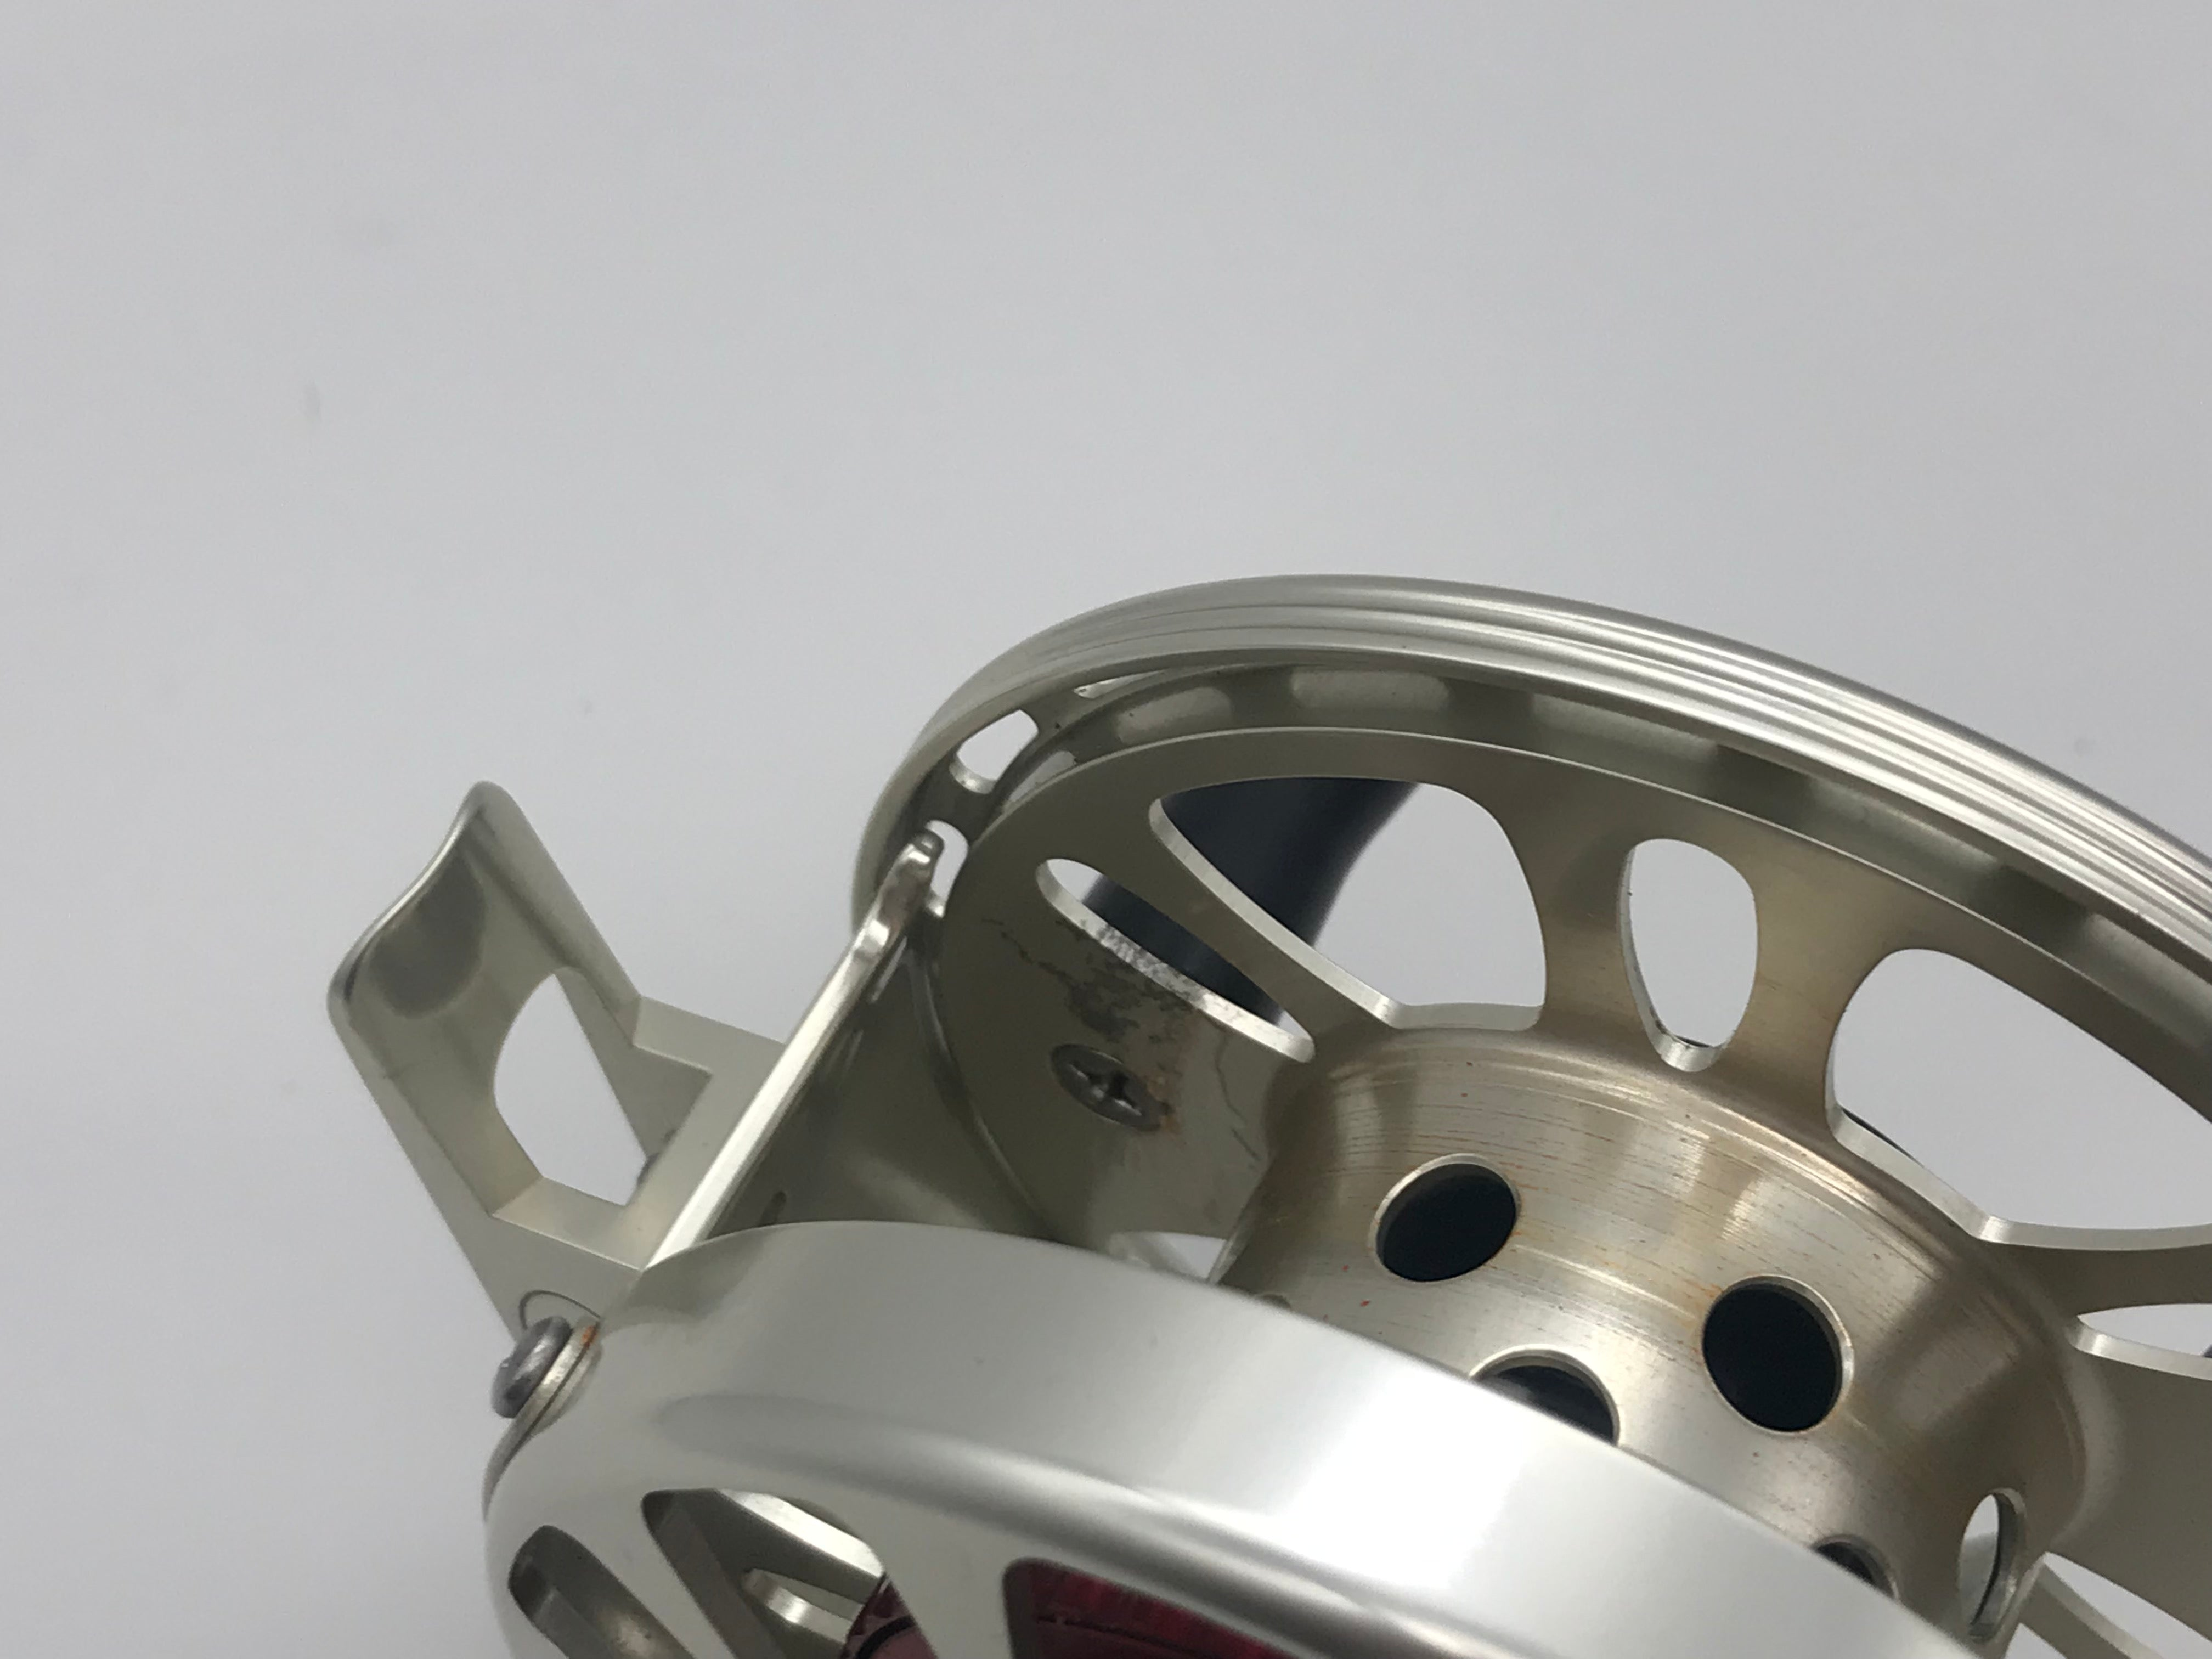 Pre-Owned Tibor Signature 5/6 Reel